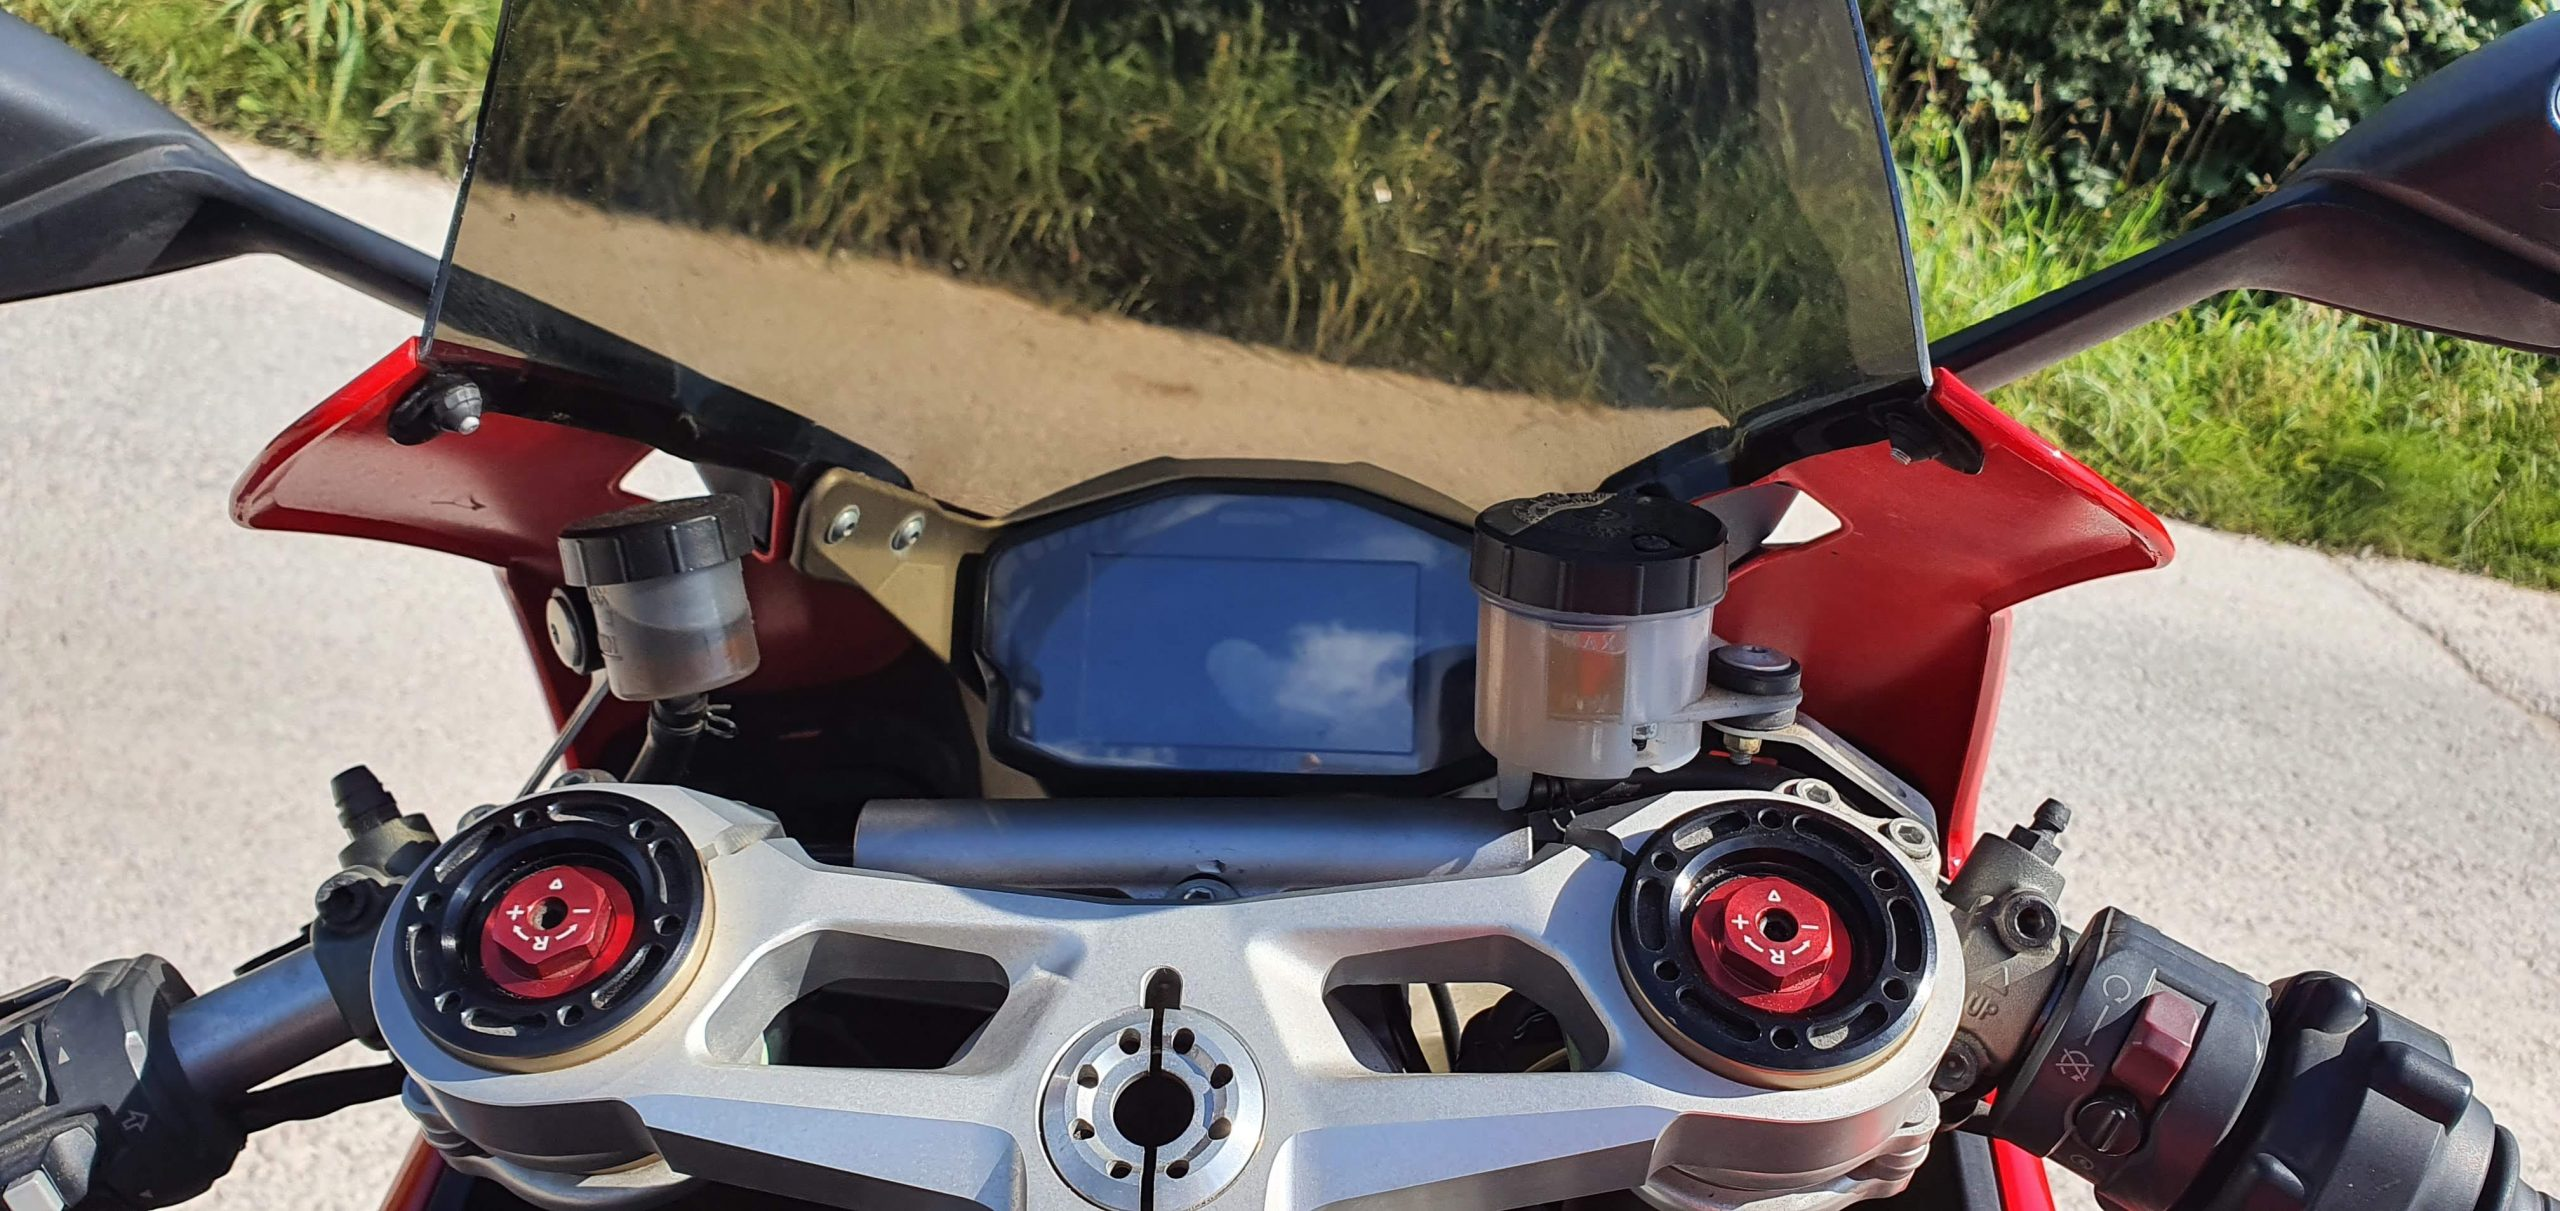 Ducati 1199 Panigale Review dash